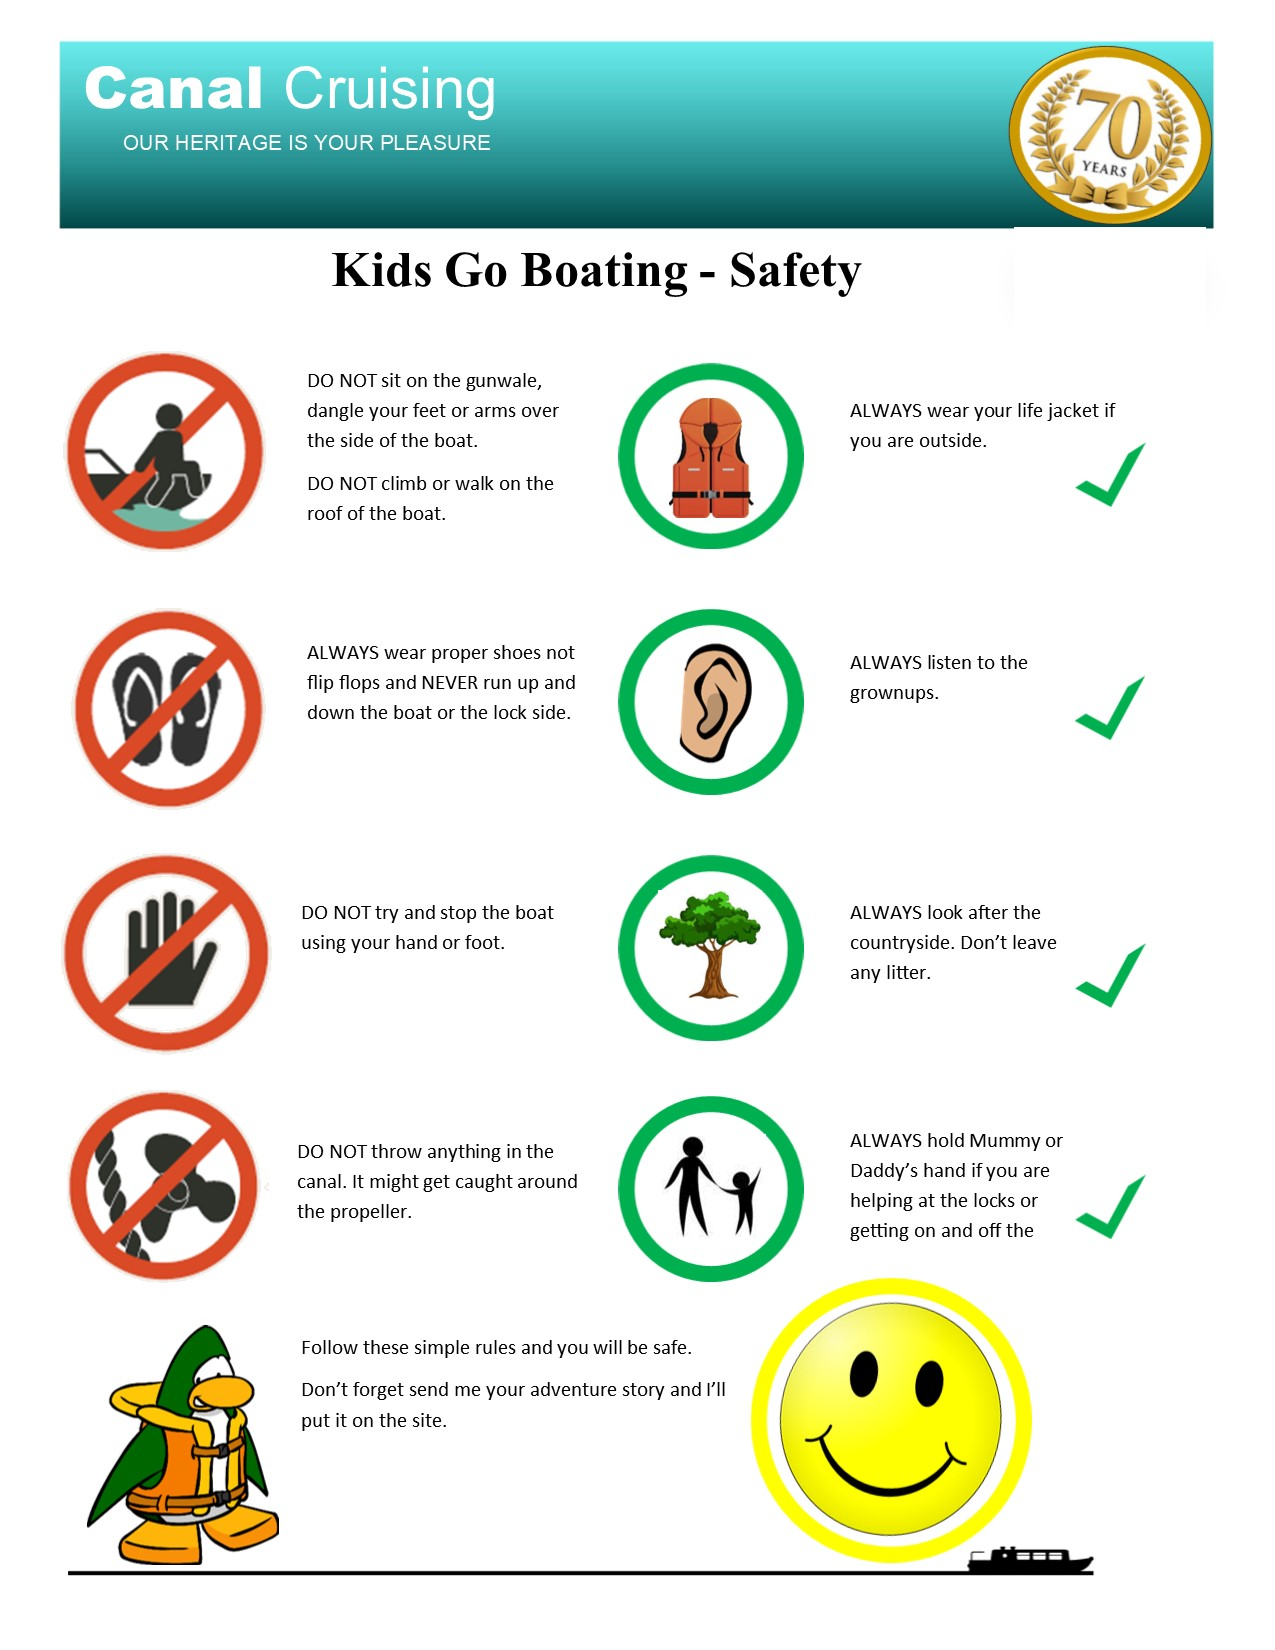 Kids go boating safety